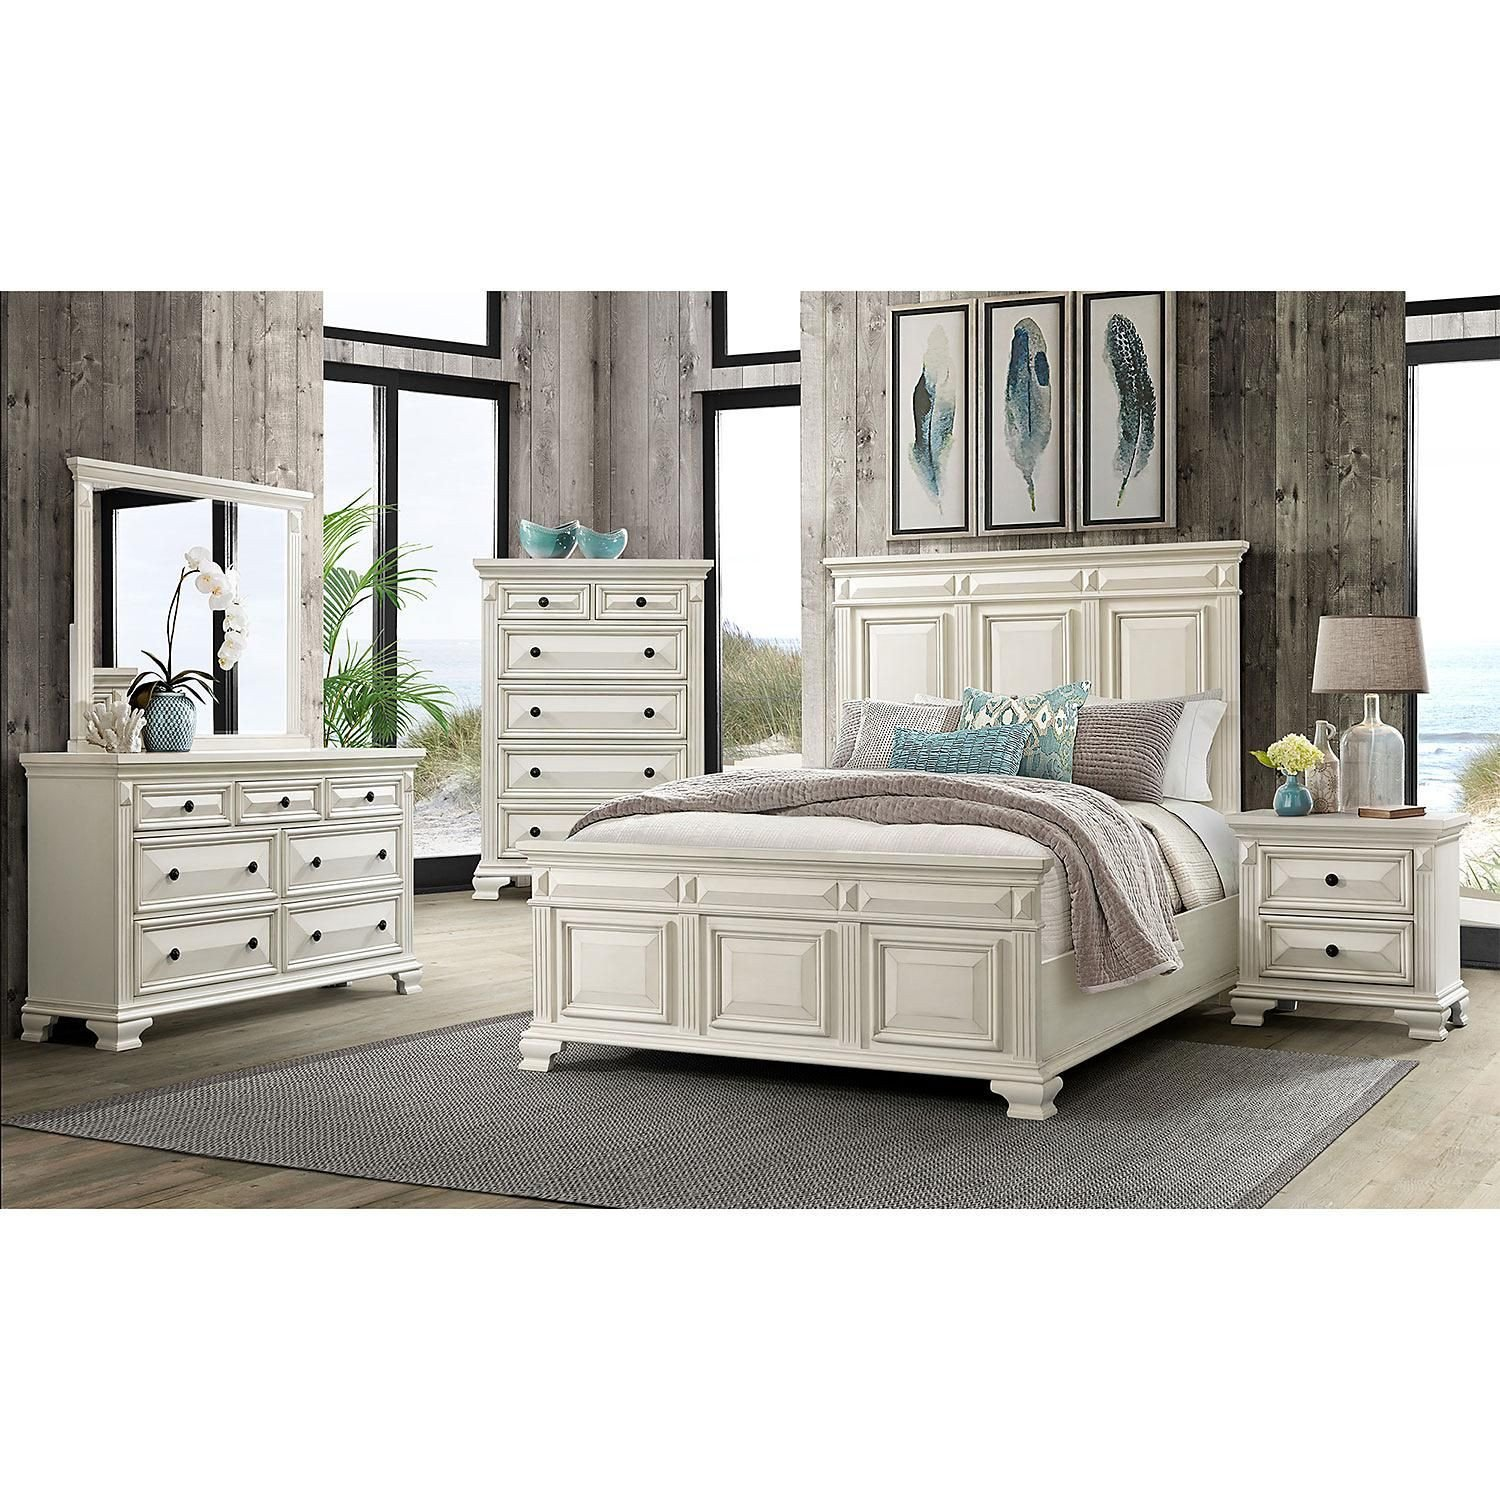 Rustic King Bedroom Set New $1599 00 society Den Trent Panel 6 Piece King Bedroom Set